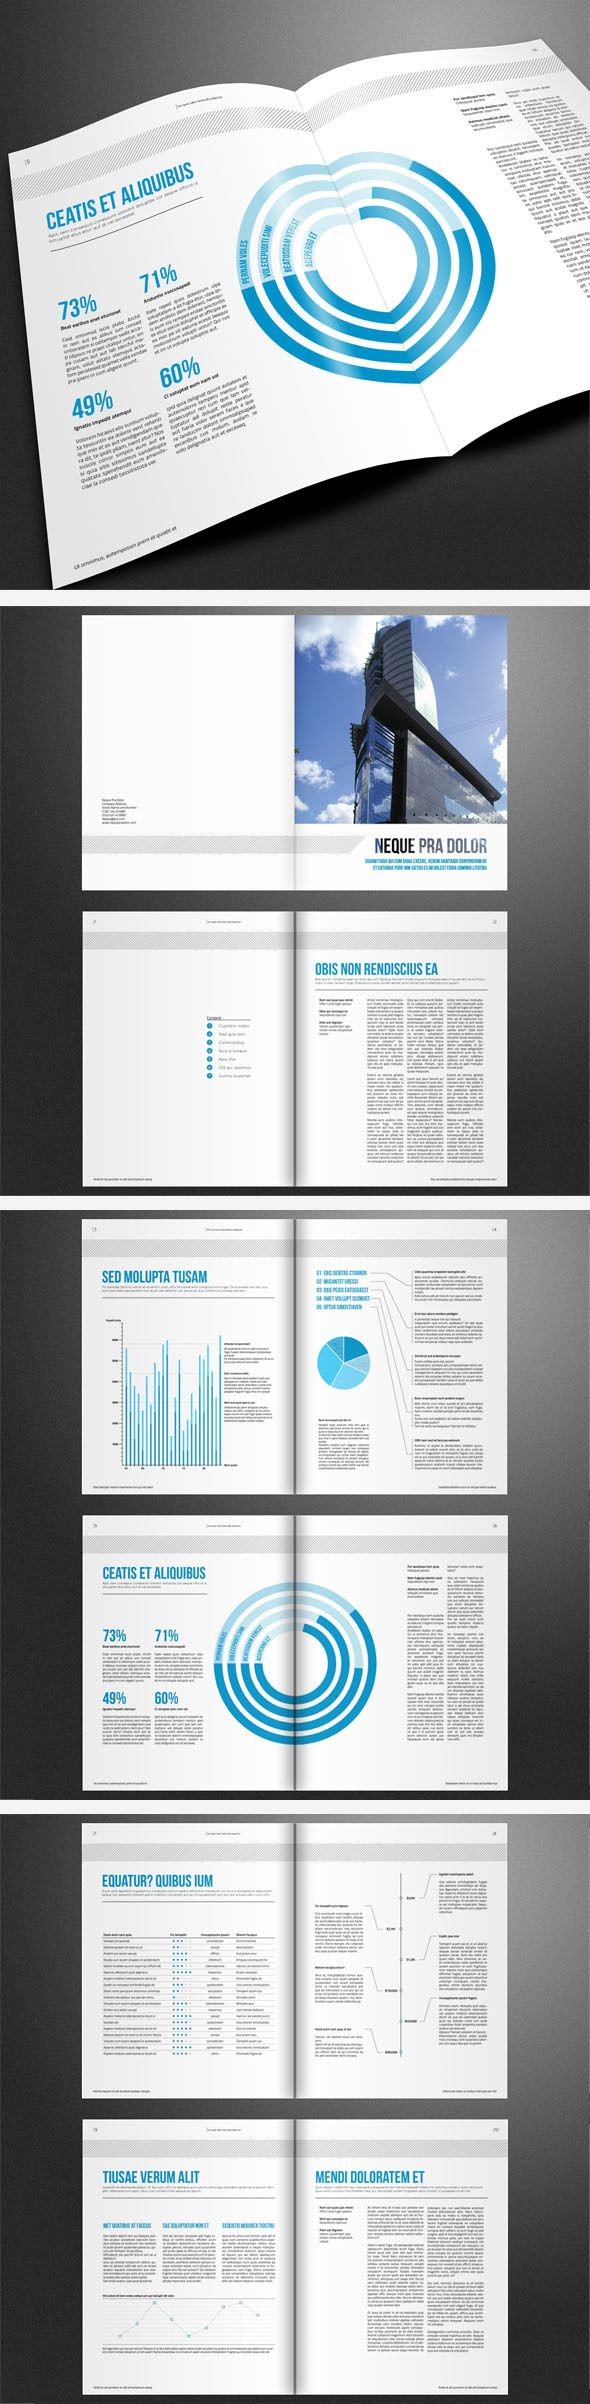 Best Brochures Product Corporate Minimalistic Images On